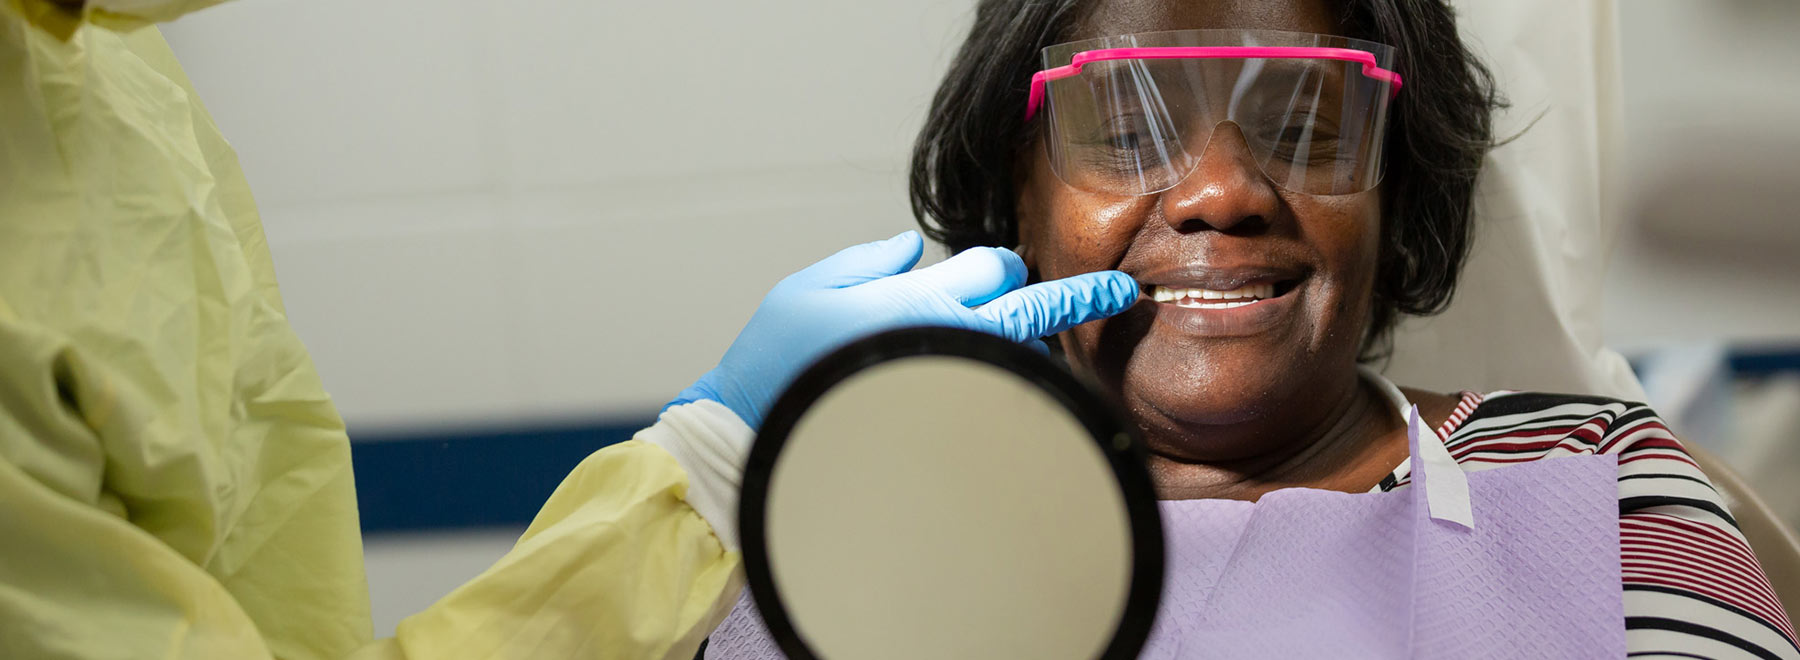 Women looks at new dentures in hand mirror